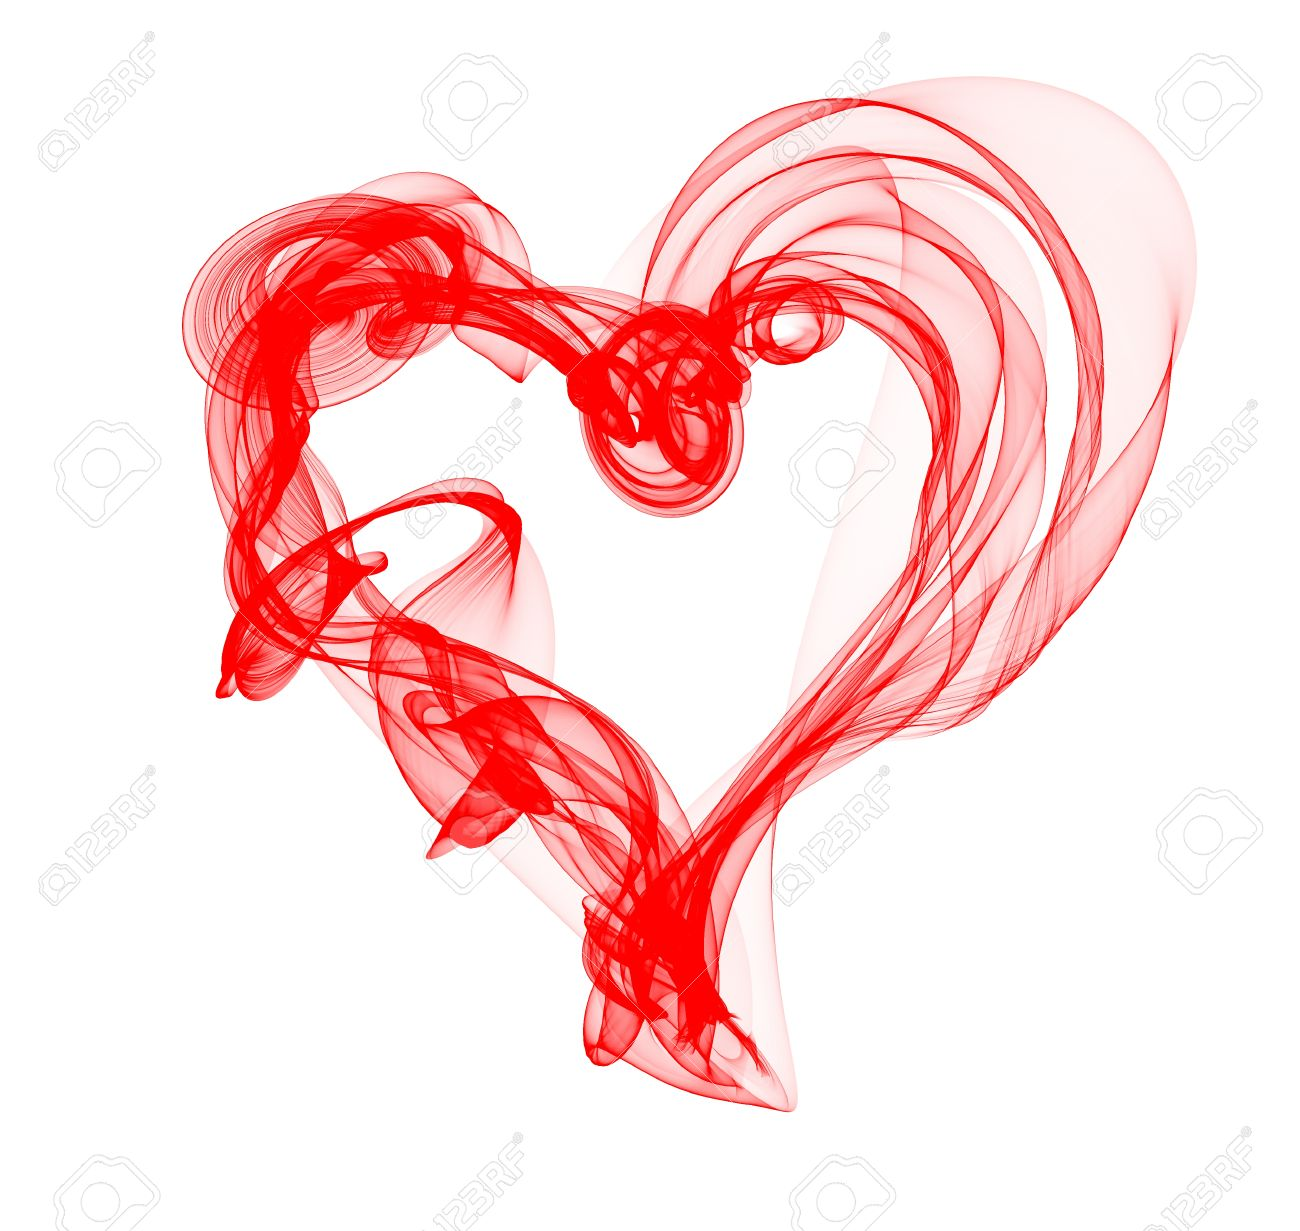 Red Smoke Heart Illustration Stock Photo, Picture And Royalty Free.